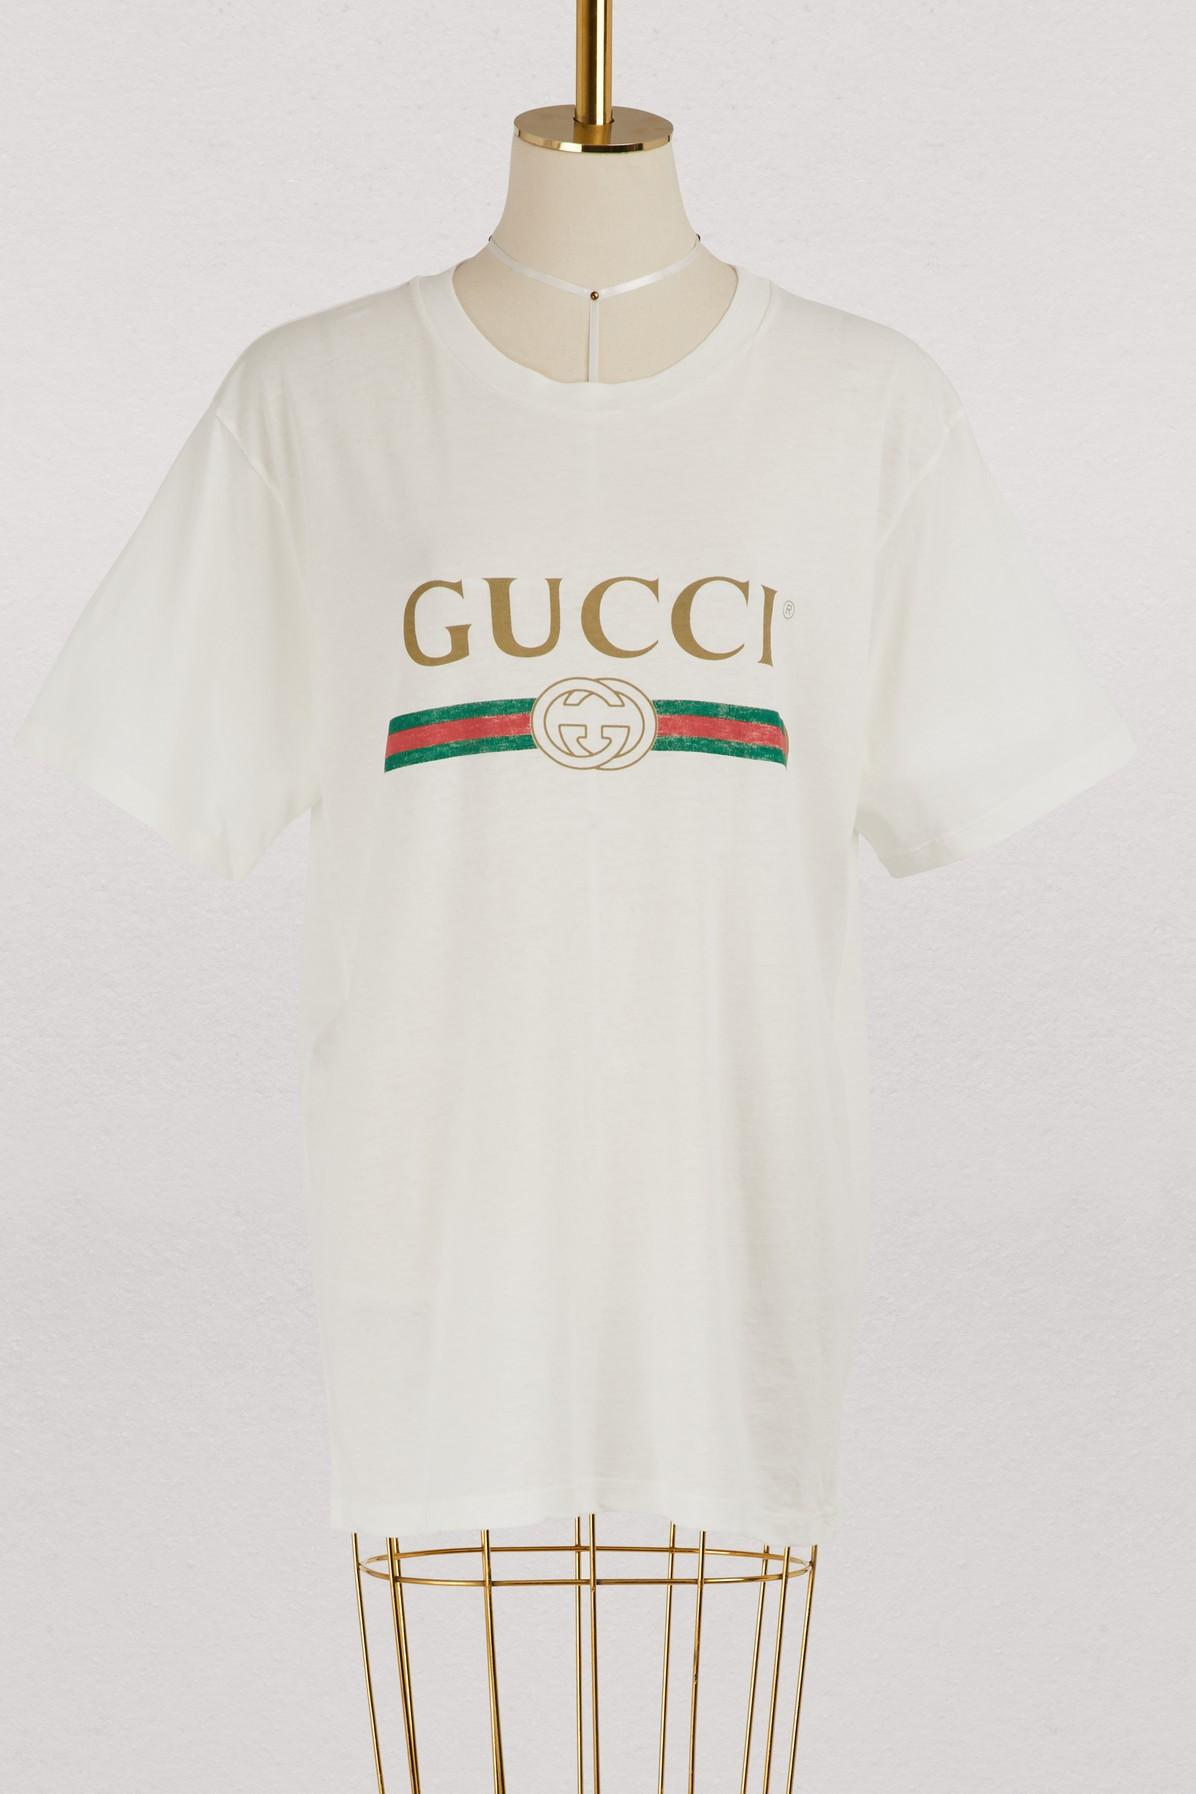 710522b6362b Gucci Women's Faded Logo Floral Embroidered T-Shirt In White In 9234  Natural White/